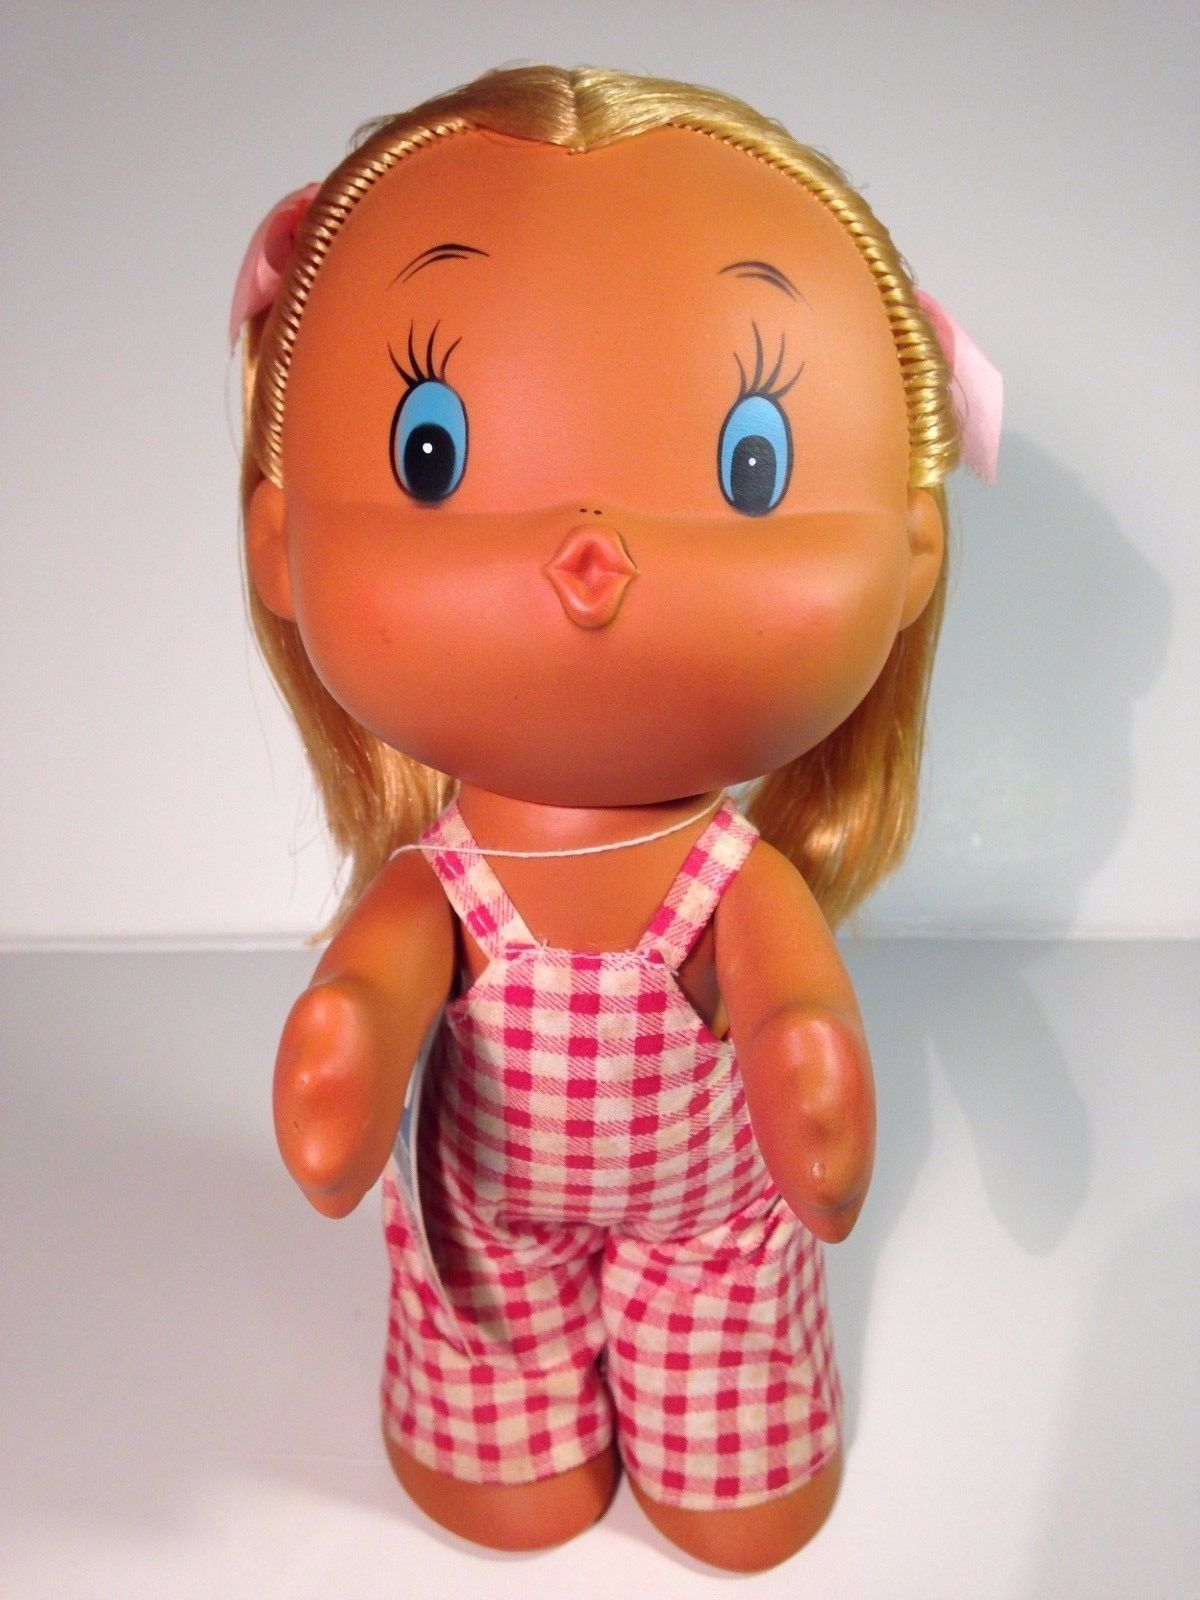 Vintage 60s 70s Kamar Another Wild Thing Kissy Kissing Plush Doll